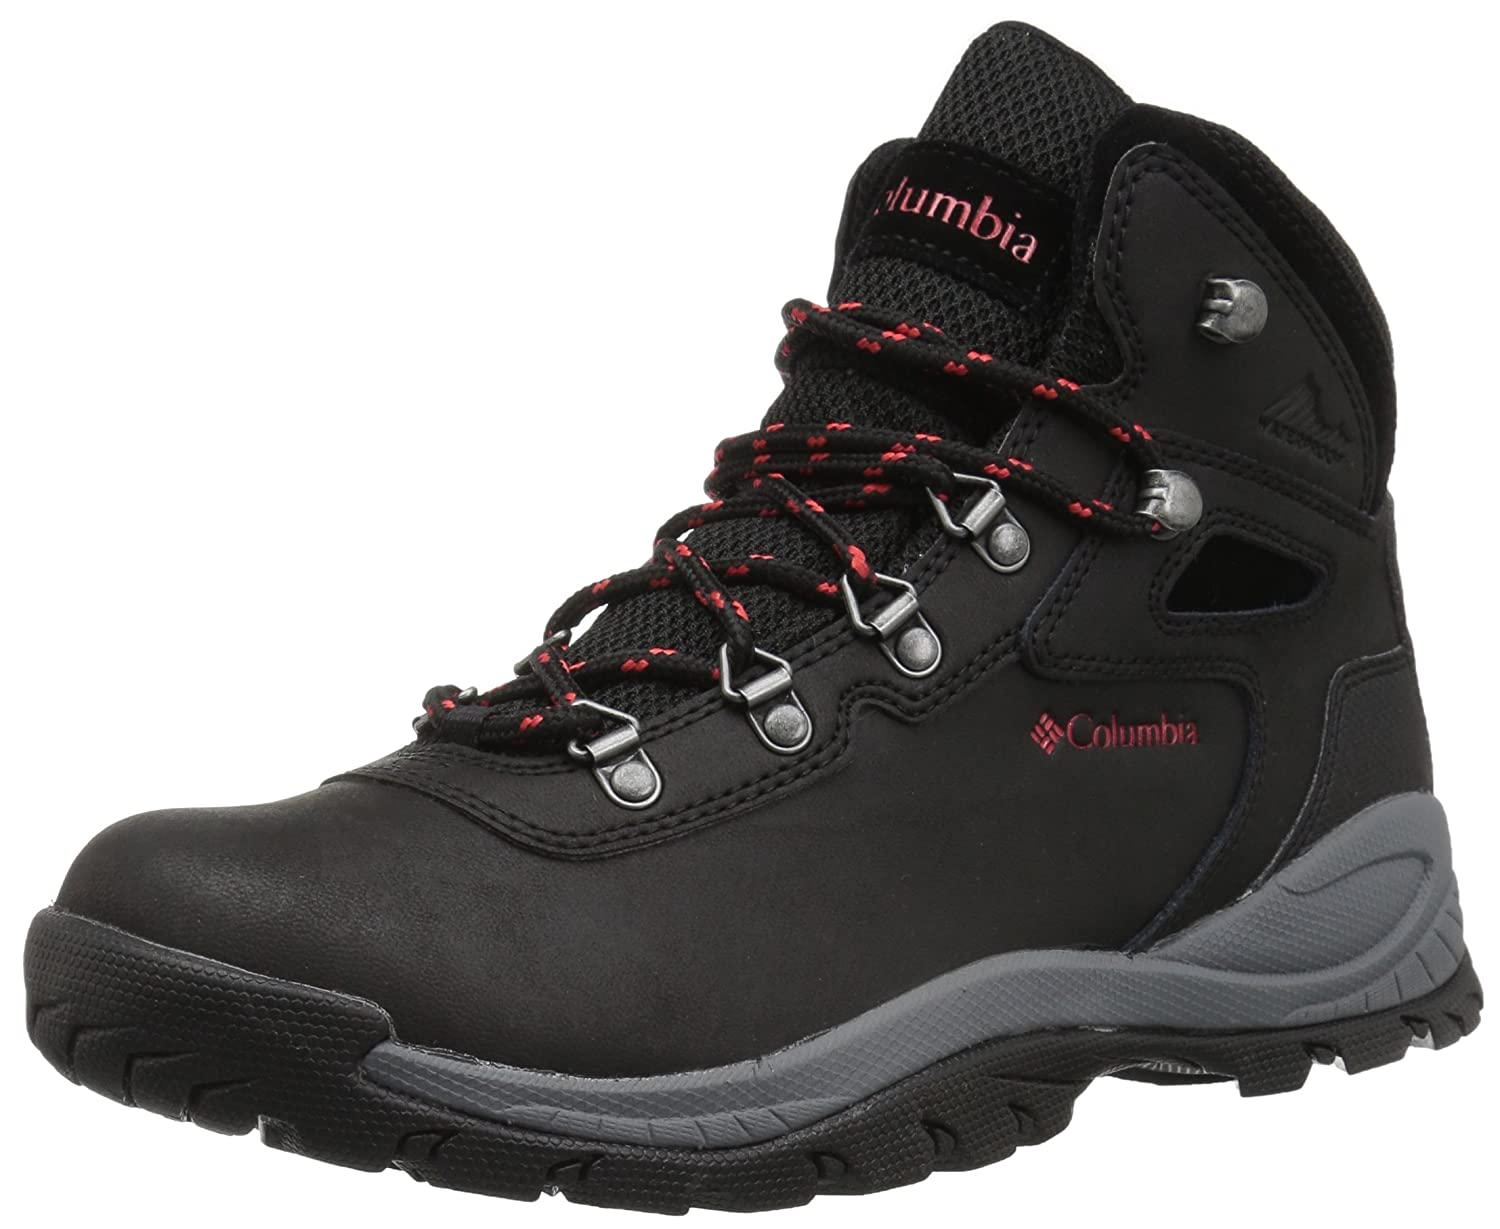 Columbia Women's Newton Ridge Plus Hiking Boot B073WGMBVG 7 B(M) US|Black, Poppy Red